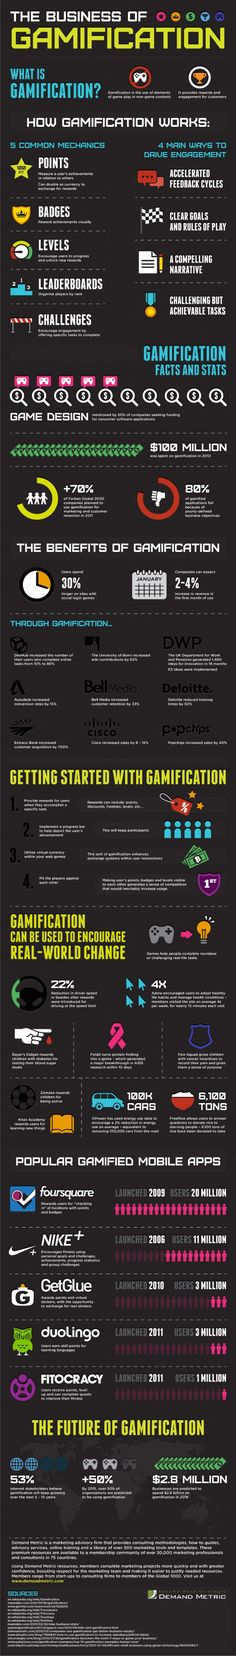 The Business of Gamification - What It Is, The Benefits, and How to Get Started